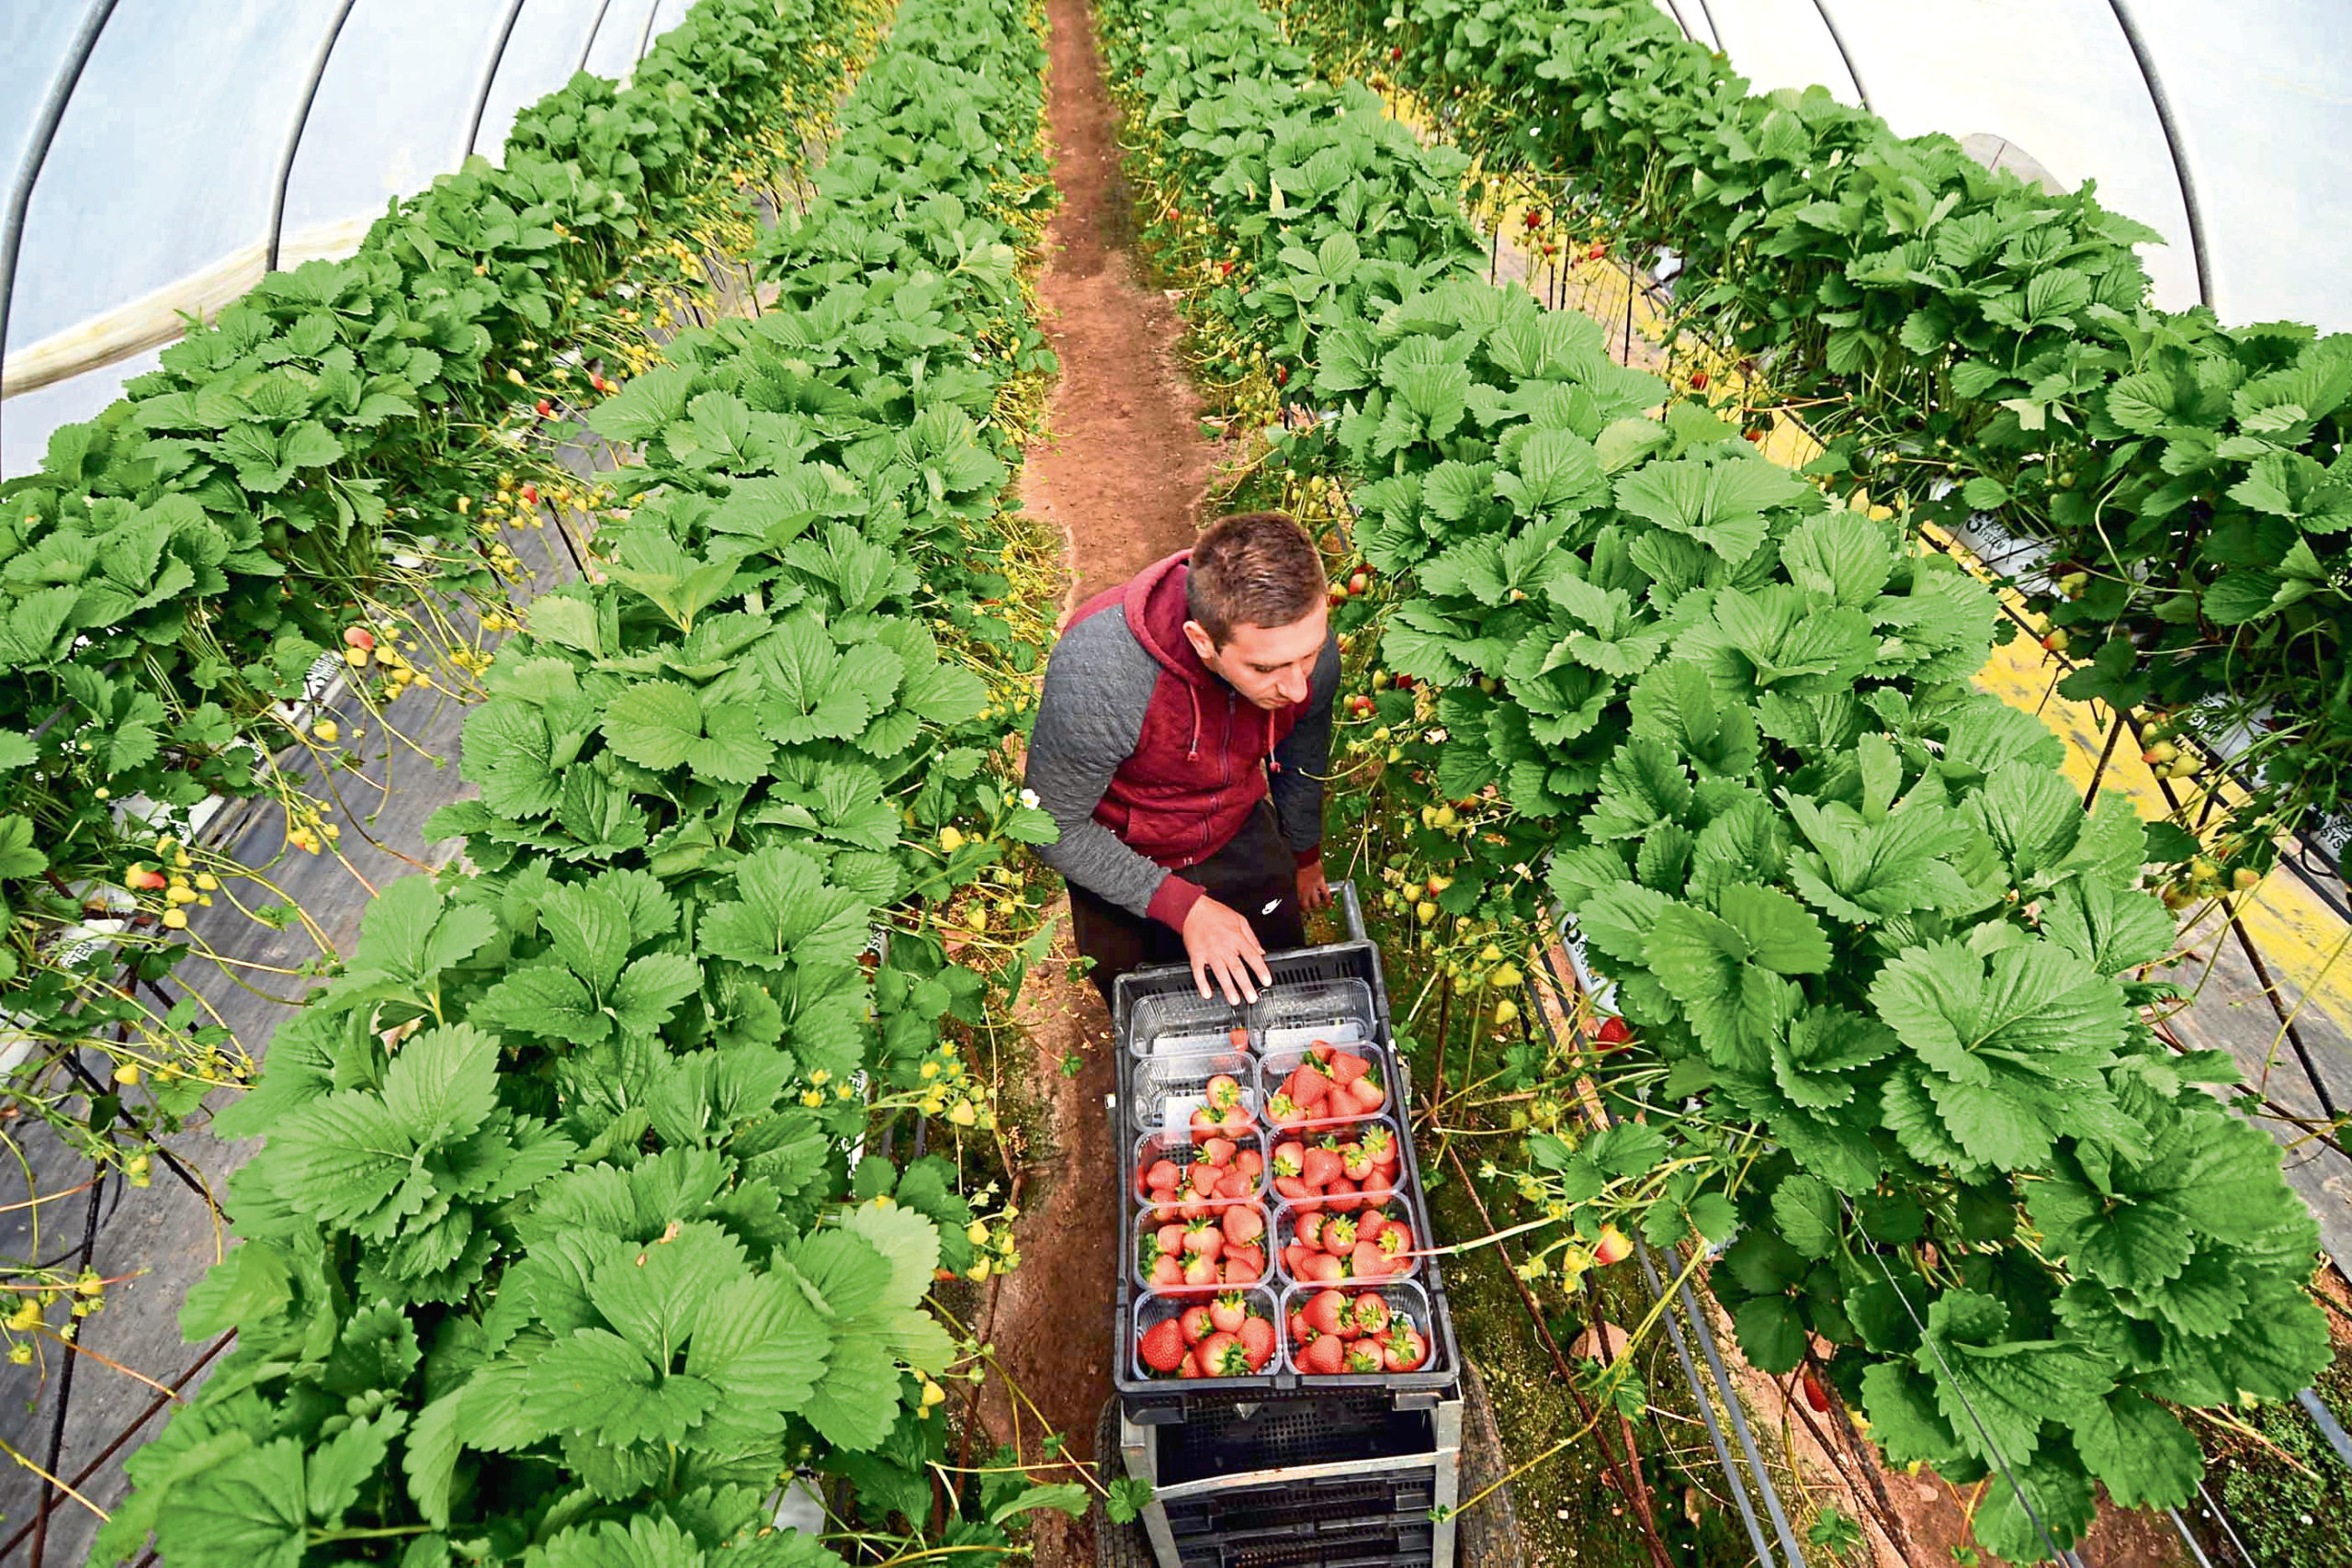 Angus Growers is looking for 3,000 workers.